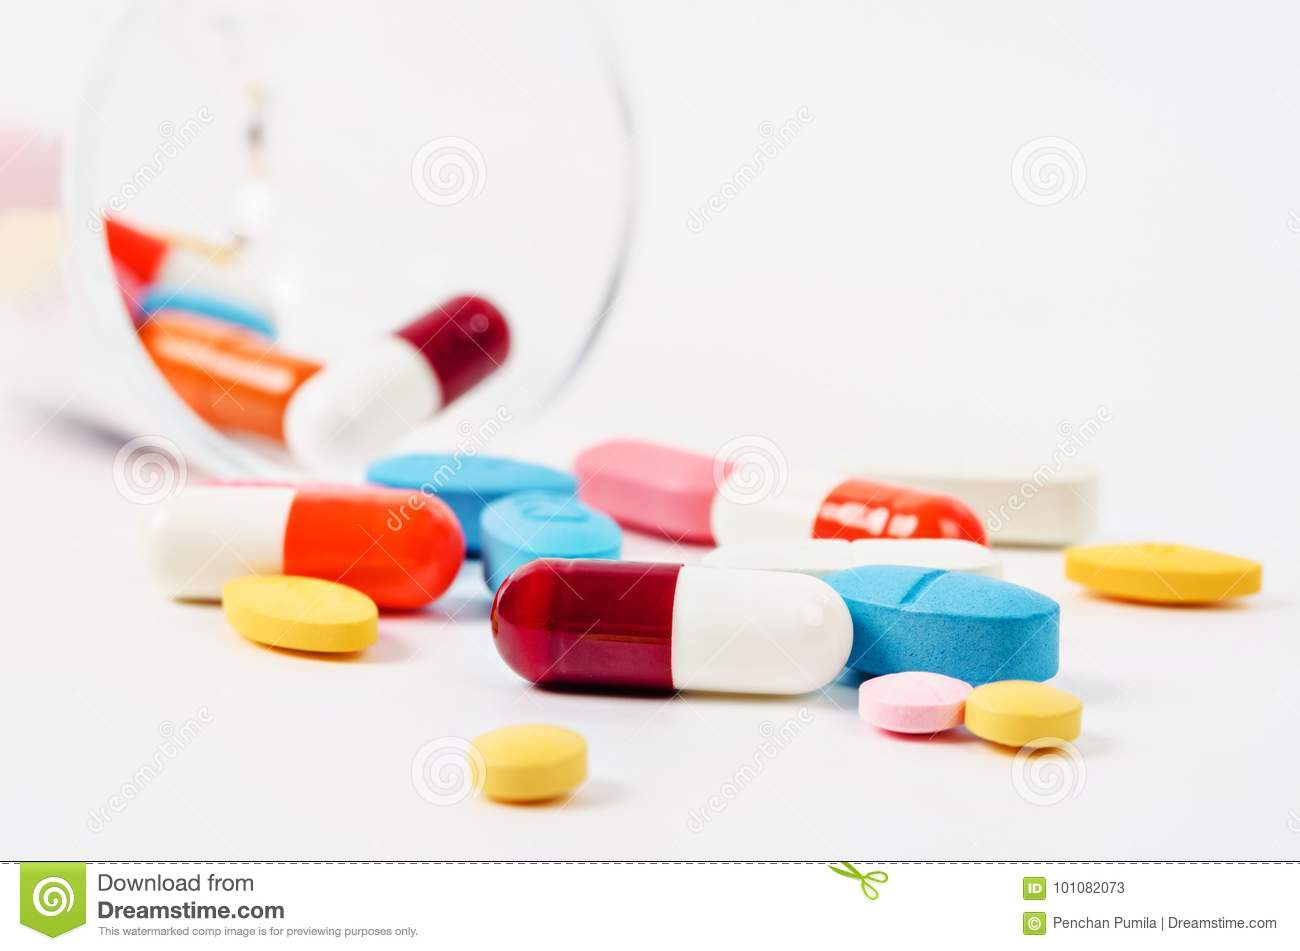 Generic prescription medicine drugs pills and assorted pharmaceutical tablets.